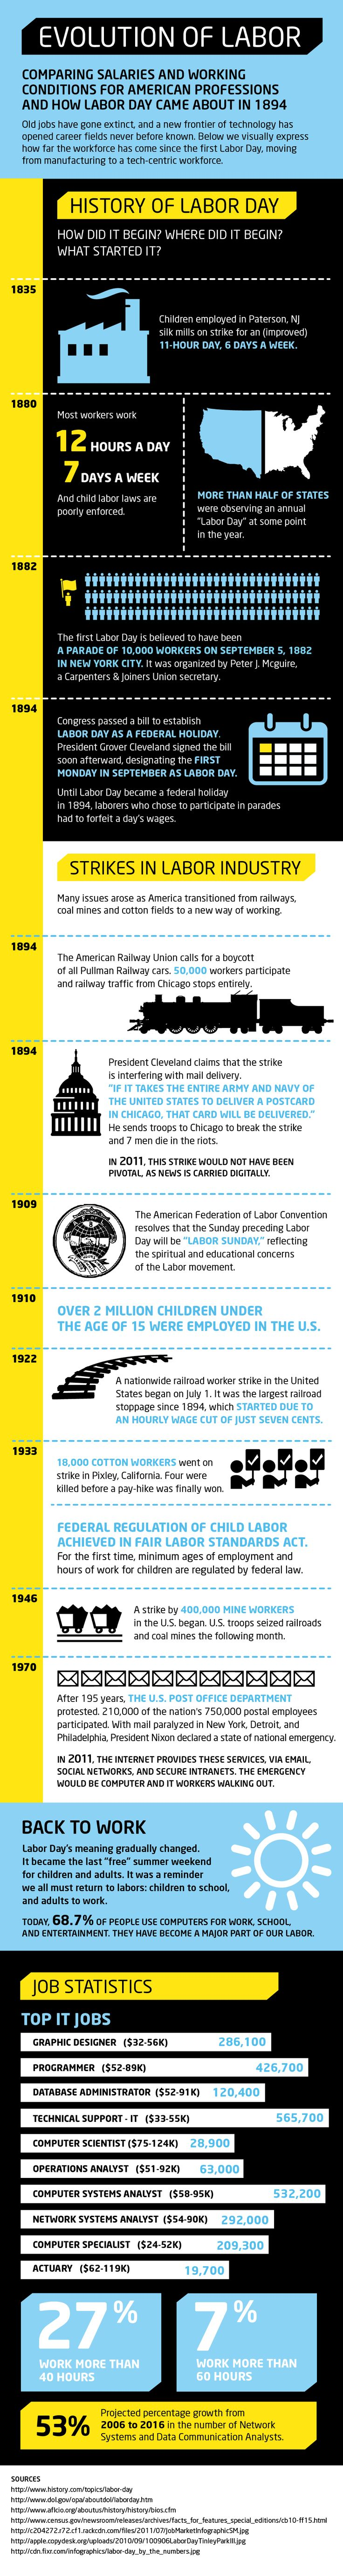 Remember These Facts The Next Time You Sleep In On A Saturday - For many people, Labor Day has become nothing more than a day off work at the end of the summer. But let's not forget the hard work of hundreds of thousands of workers who fought for the basic rights we have today. Weekends, anyone? www.healthcoverageally.com